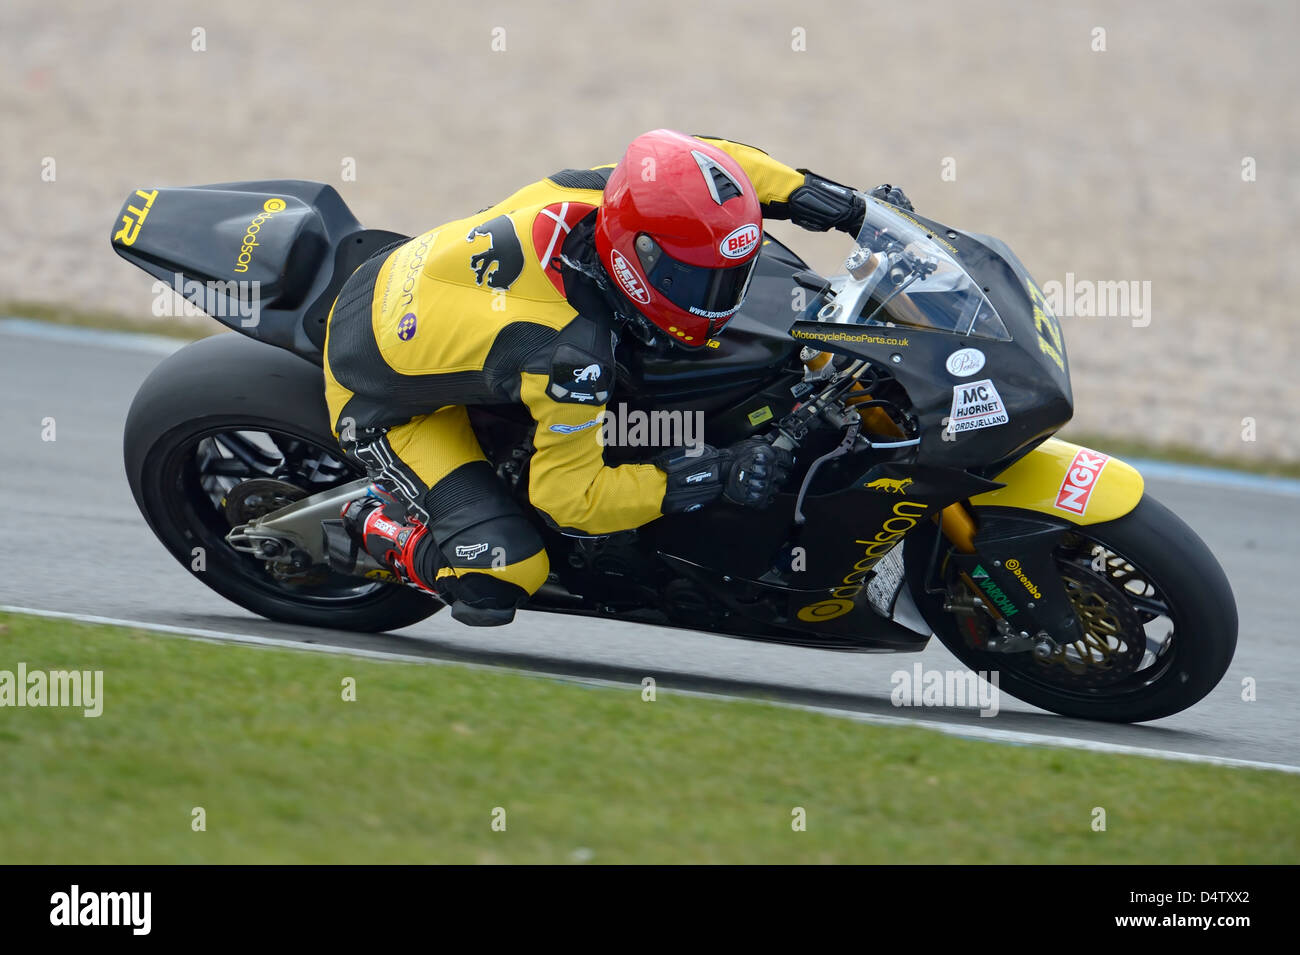 robbin harms on the honda, bsb 2013 - Stock Image